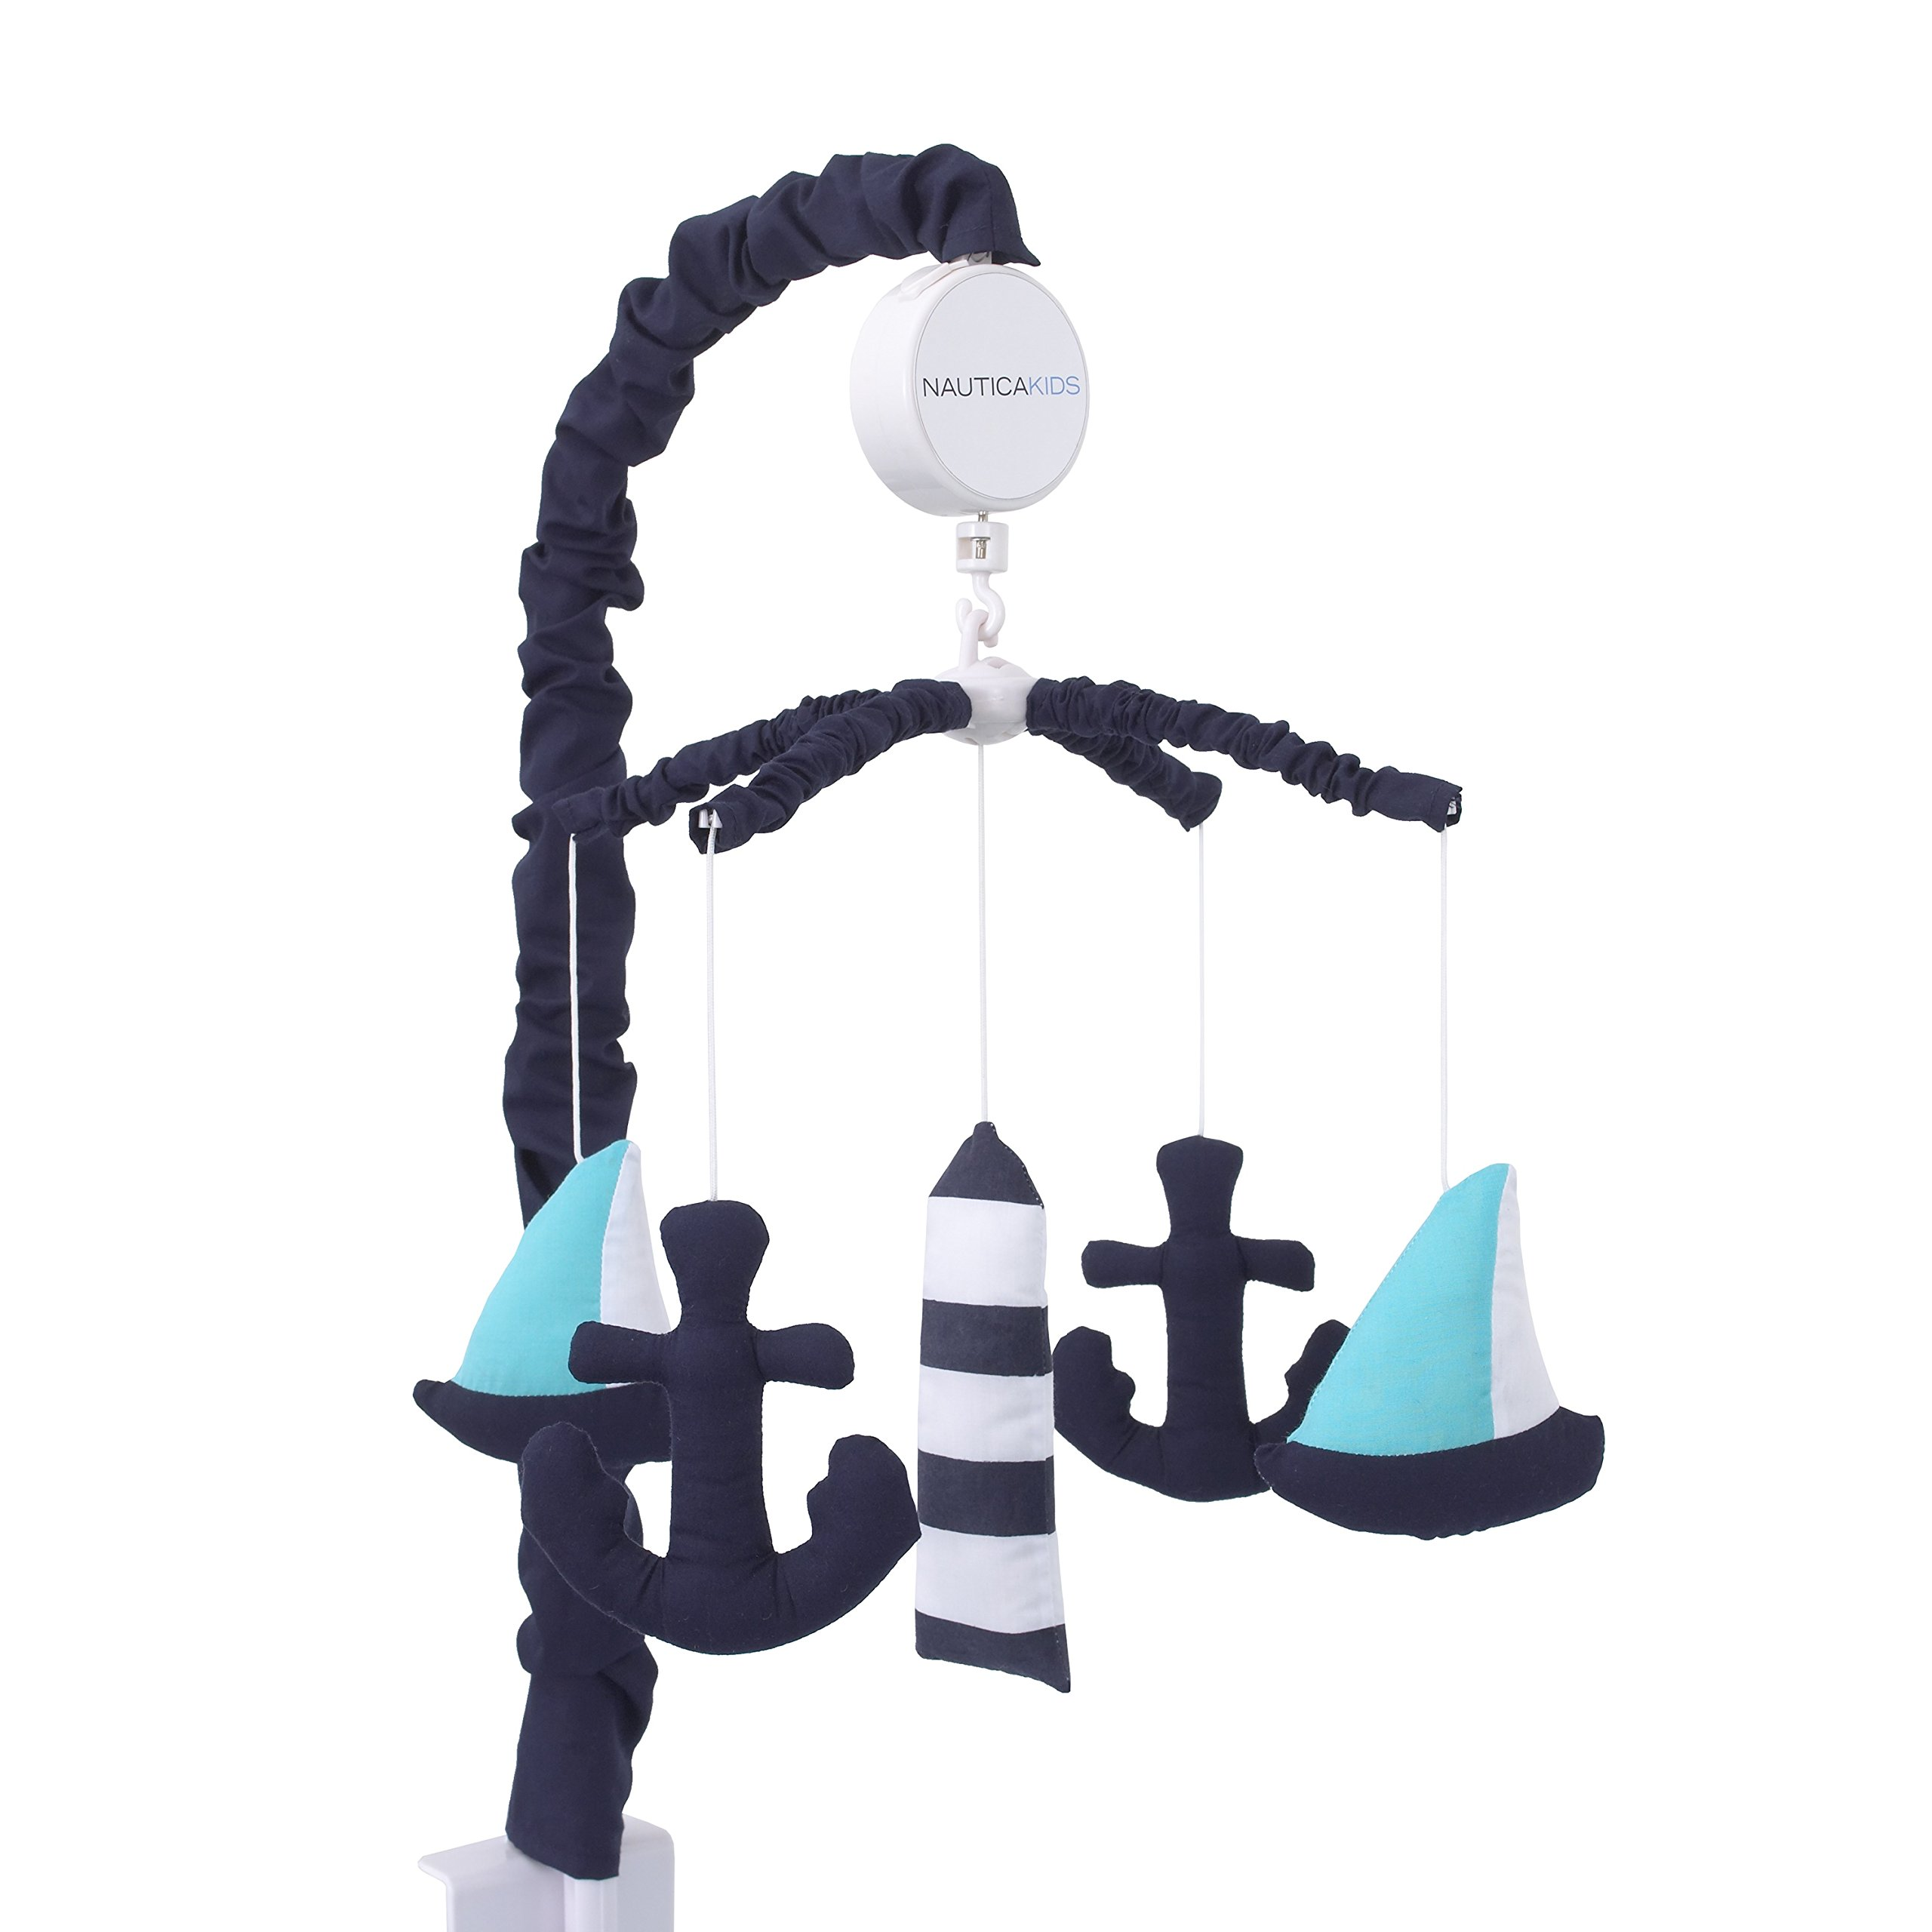 Nautica Kids Set Sail Nautical/Anchor Crib Nursery Musical Mobile, Navy, Aqua, White by Nautica